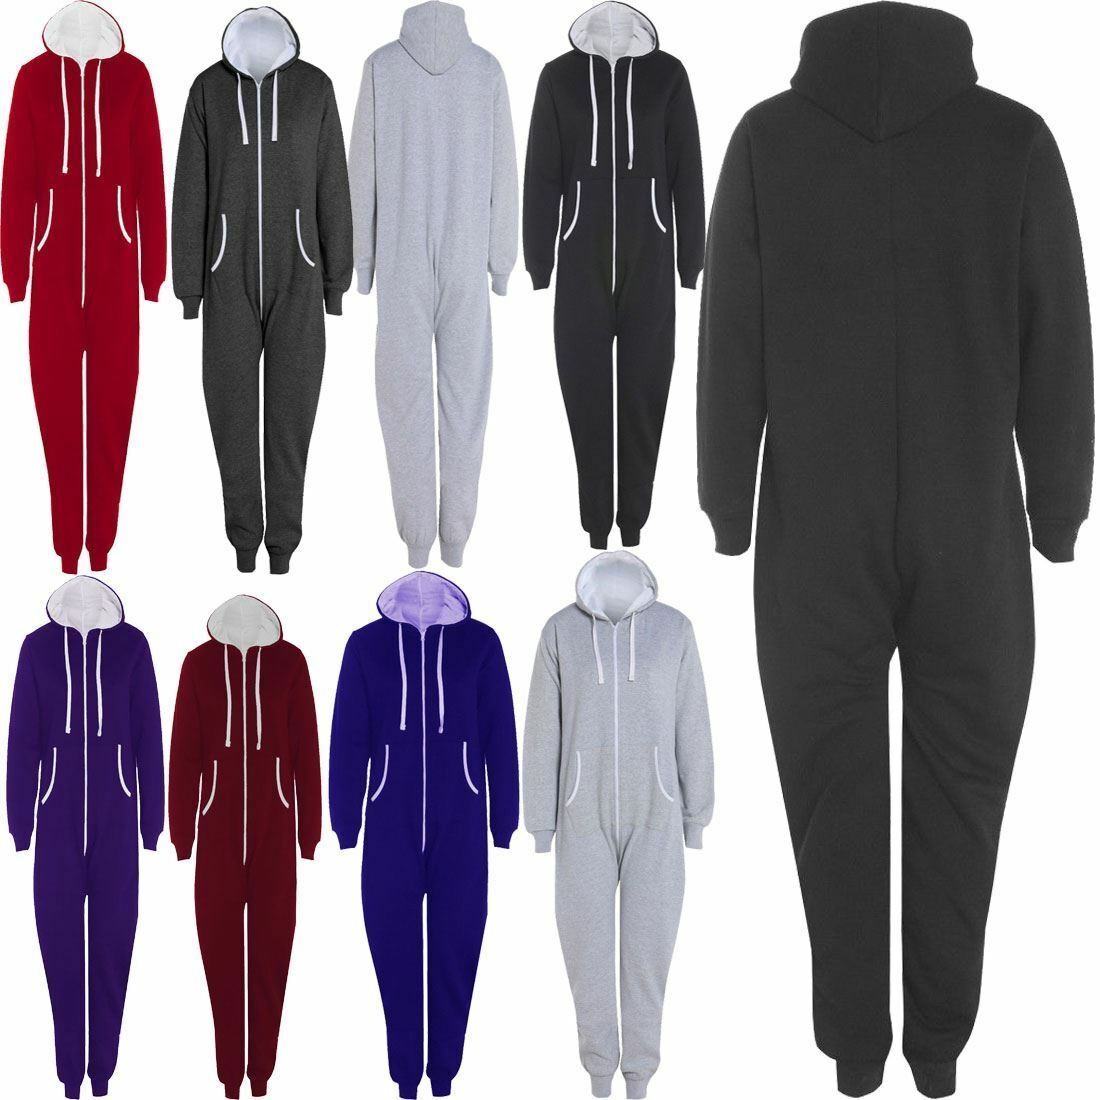 Mens Womens Thermal All In One Warm Hooded Playsuit Unisex ZipUp Onsie1 Jumpsuit